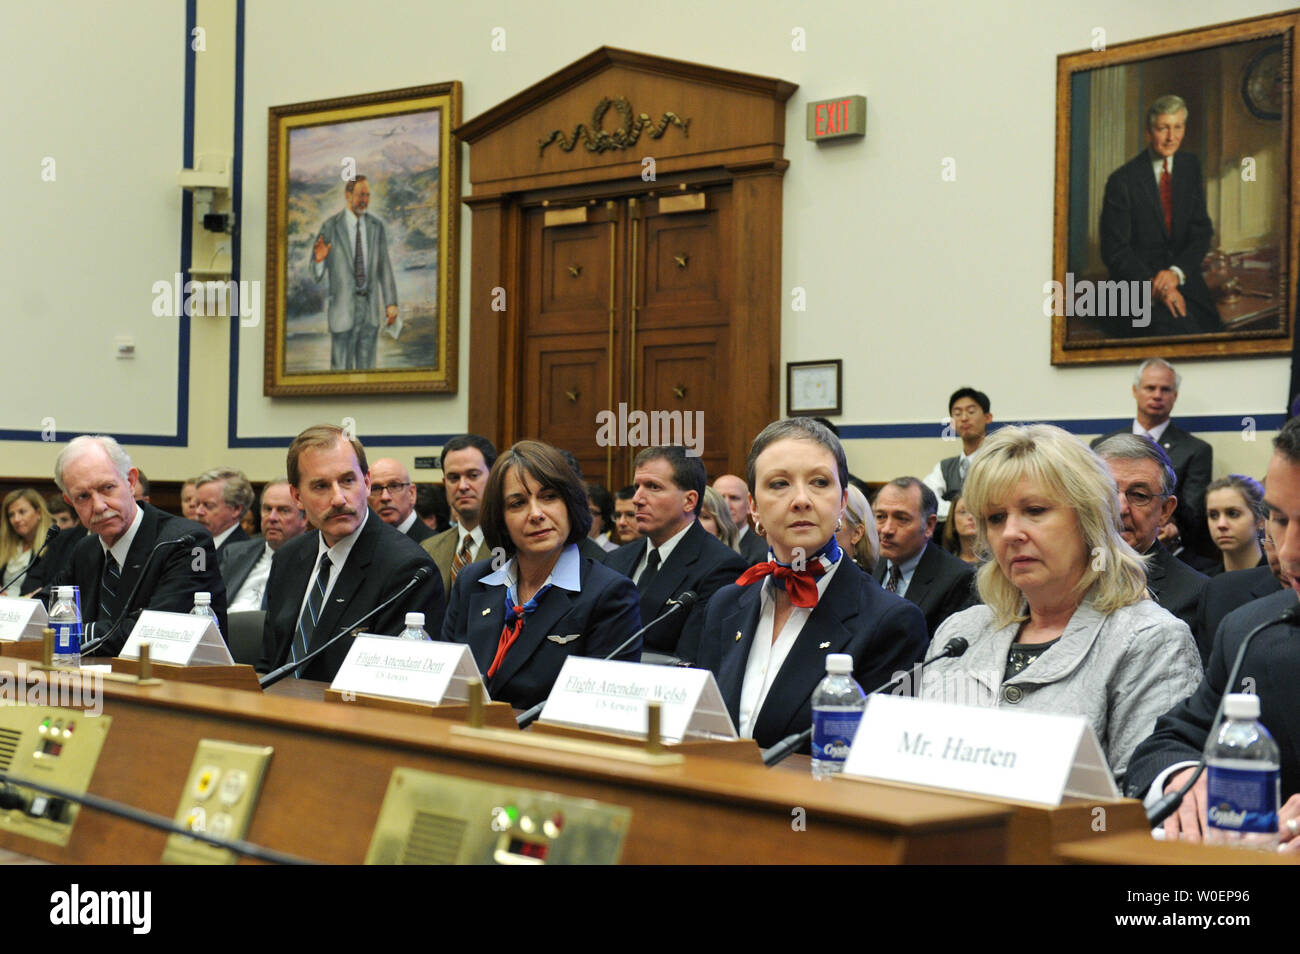 The pilots and crew of US Airways Flight 1549, from left to right, Captain Chesley Sullenberger III, First Officer Jeffrey Skiles, flight attendants Sheila Dail, Donna Dent, and Doreen Welsh along with air traffic control Robert Sumwalt III testify before a House Aviation Subcommittee hearing on the US Airways Flight 1549 accident, in Washington on February 24, 2009.  US Airways Flight 1549 crash landed in the Hudson River off of New York City on January 18, five minutes after takeoff from LaGuardia International Airport, there were no casualties. (UPI Photo/Kevin Dietsch) - Stock Image